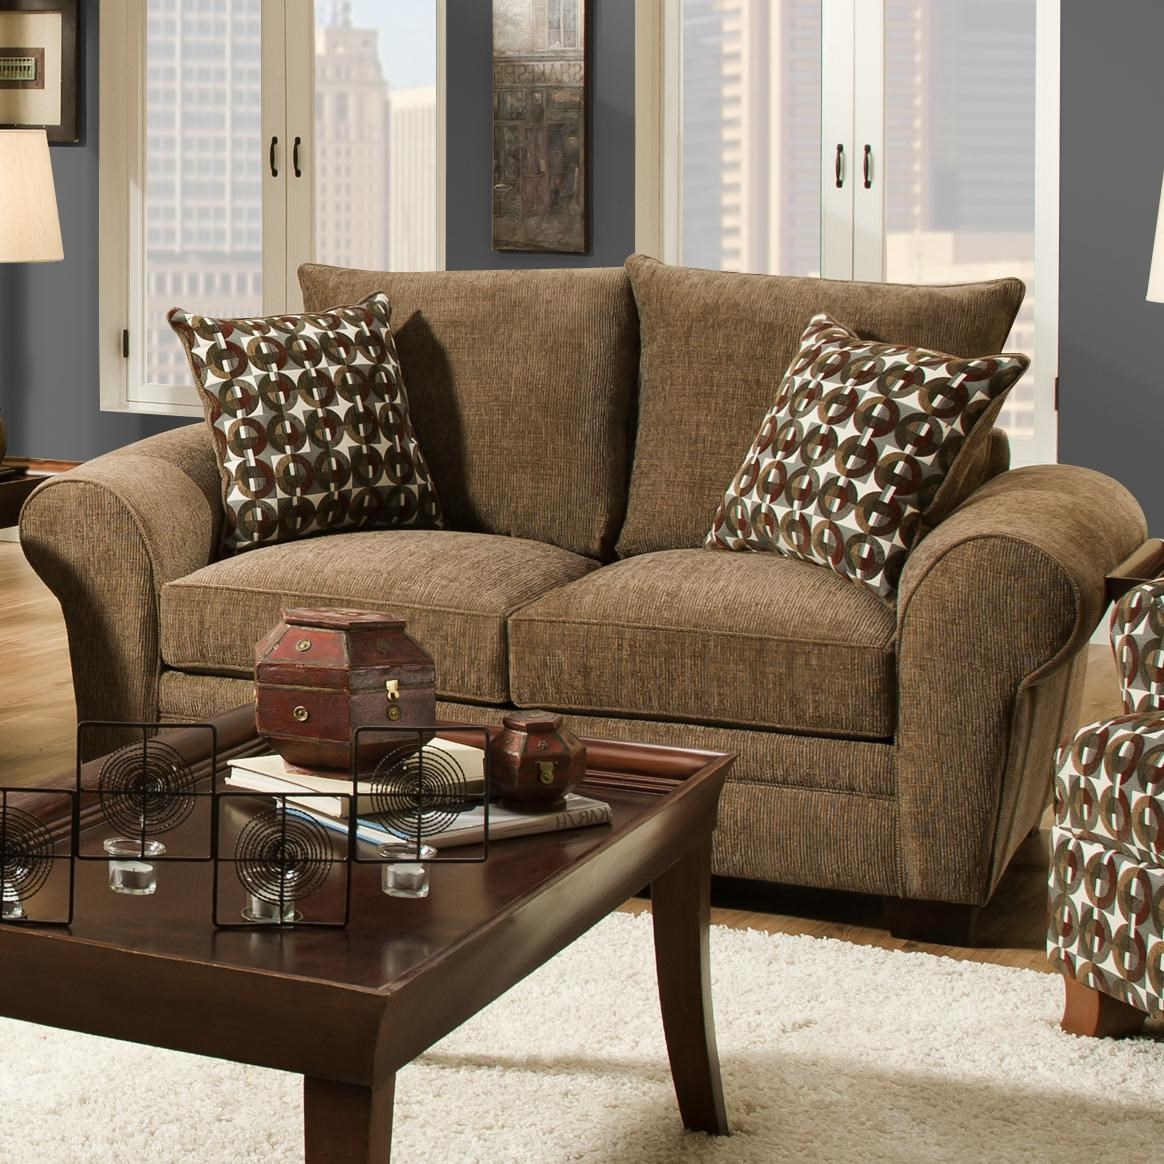 Charmant Corinthian 5460 Traditional Styled Loveseat With Comfortable Look For  Casual Family Living